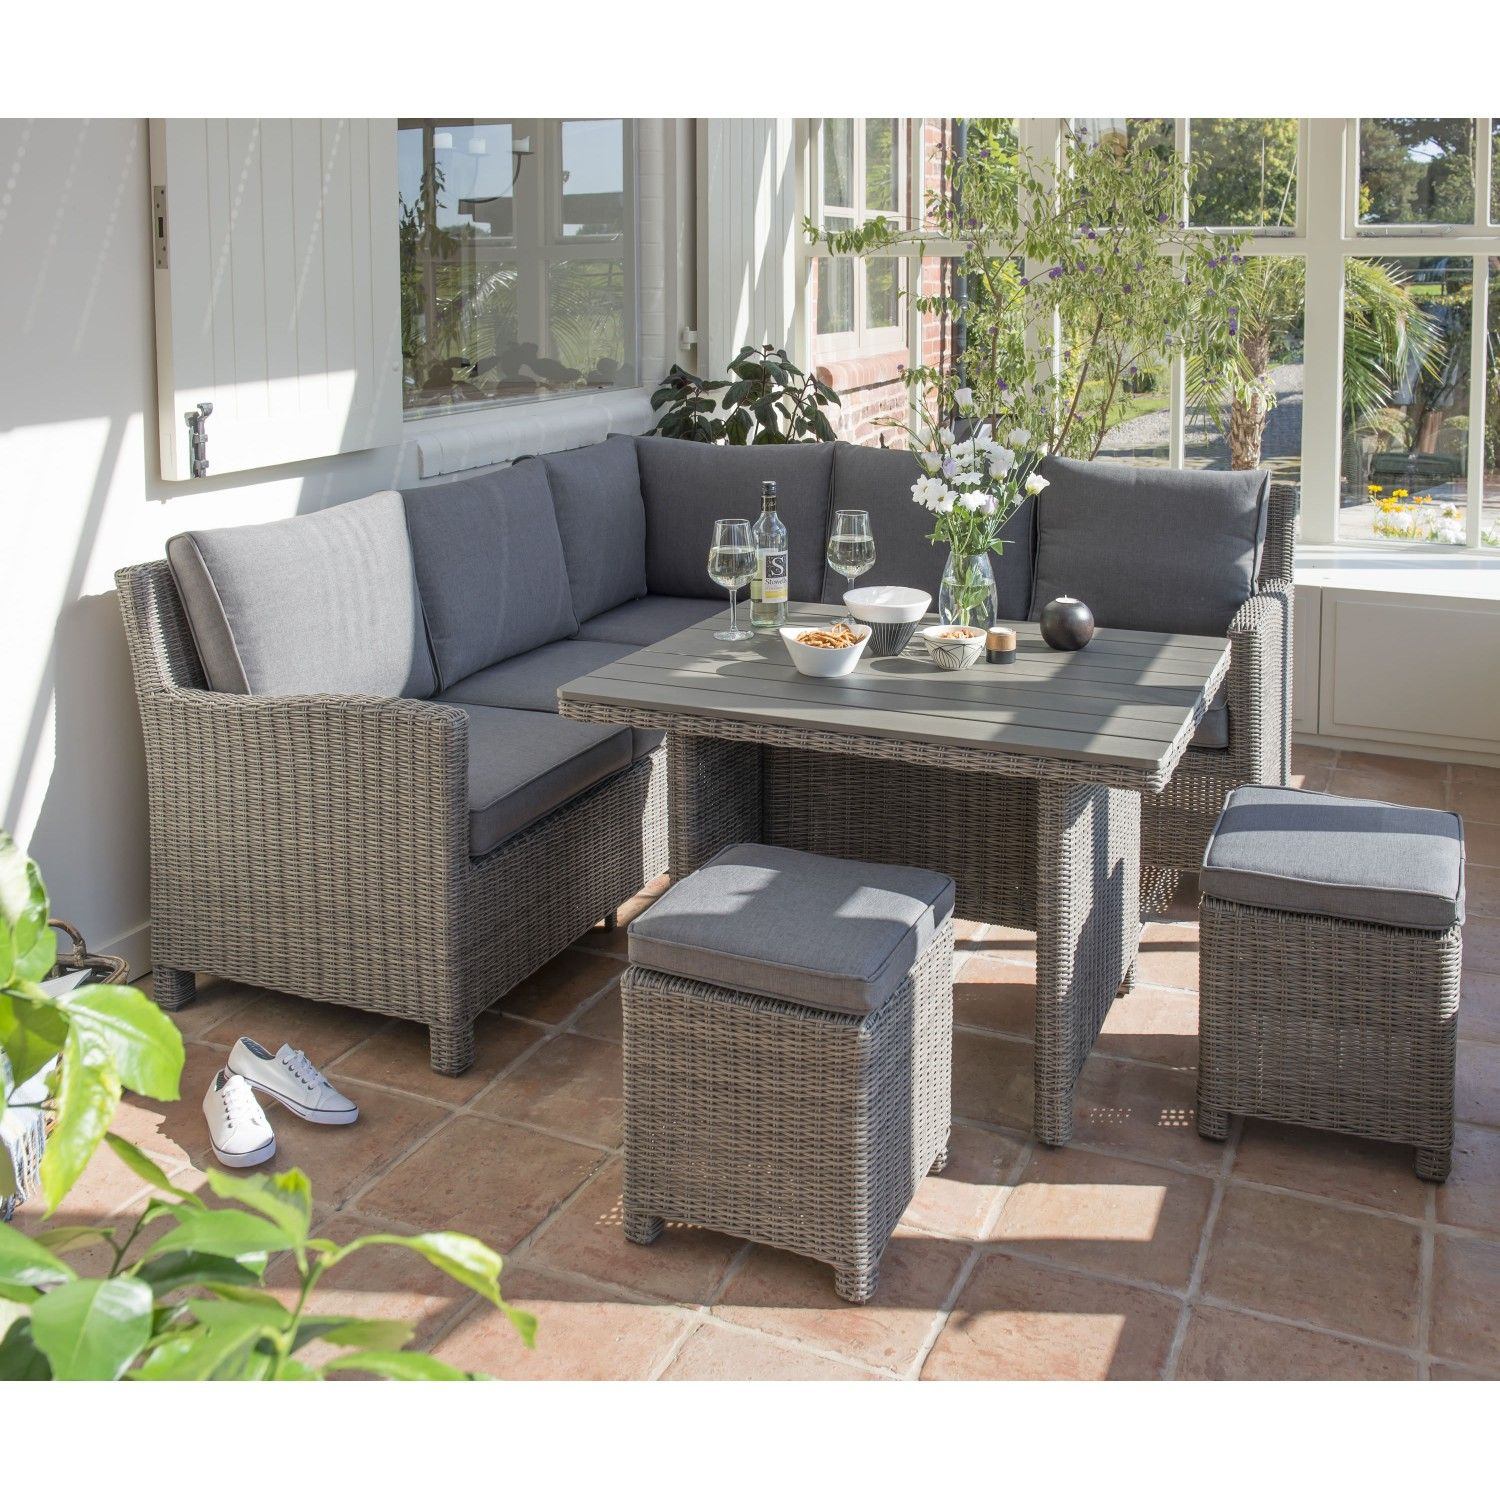 Kettler Paros 8 Seater Garden Dining Table And Chairs Set Grey: Kettler Palma Mini Corner Set Rattan